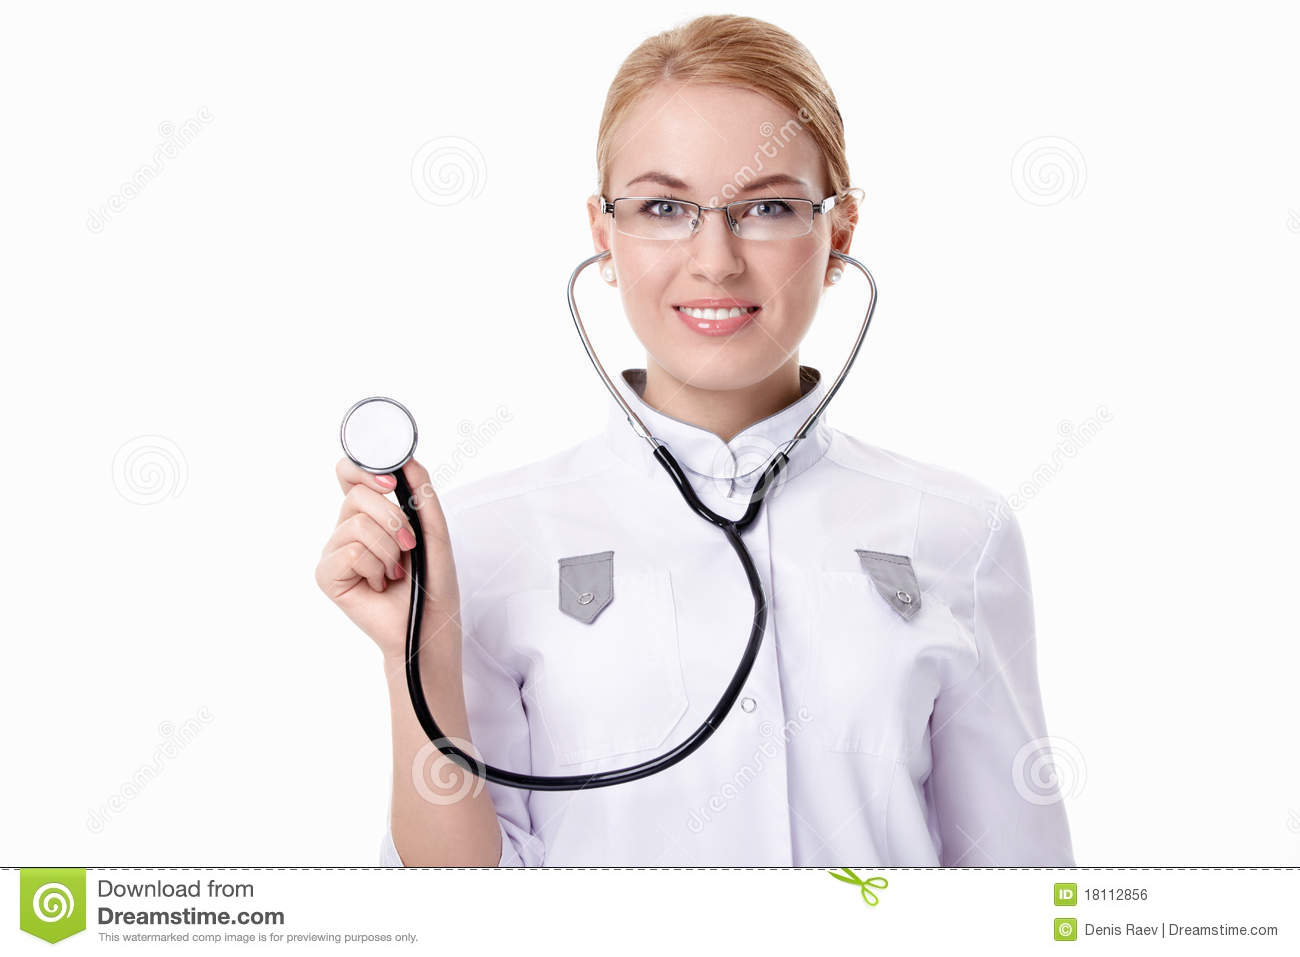 Doctor With Stethoscope Royalty Free Stock Image - Image: 18112856